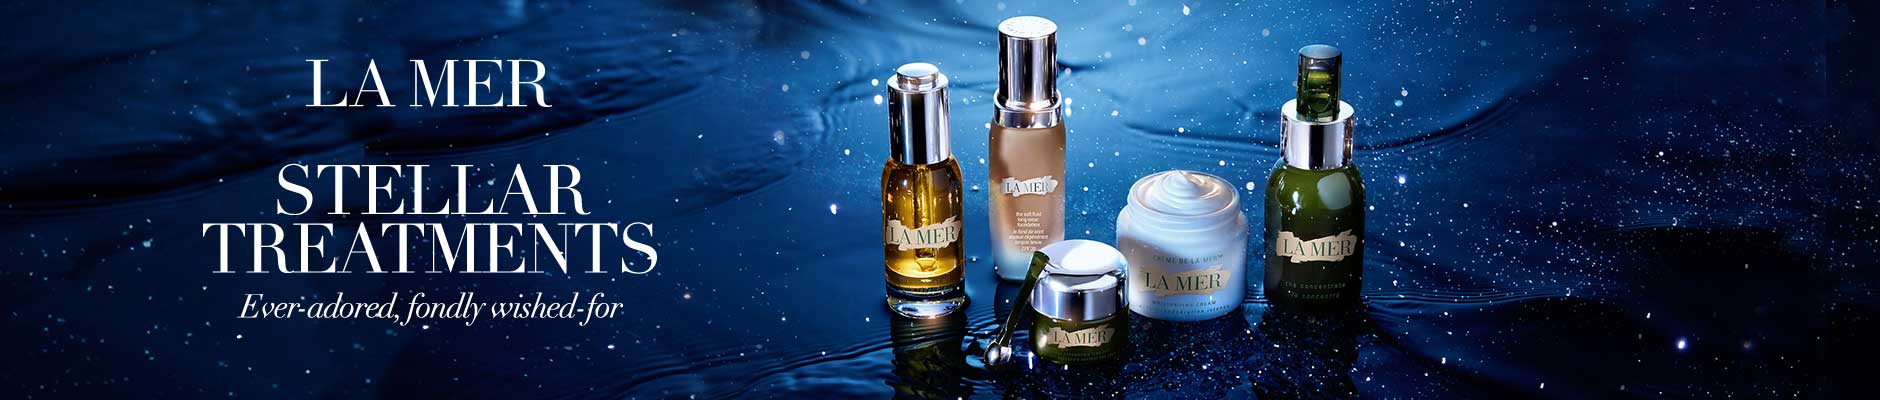 La Mer Stellar Treatments - Ever-adored, fondly wished-for